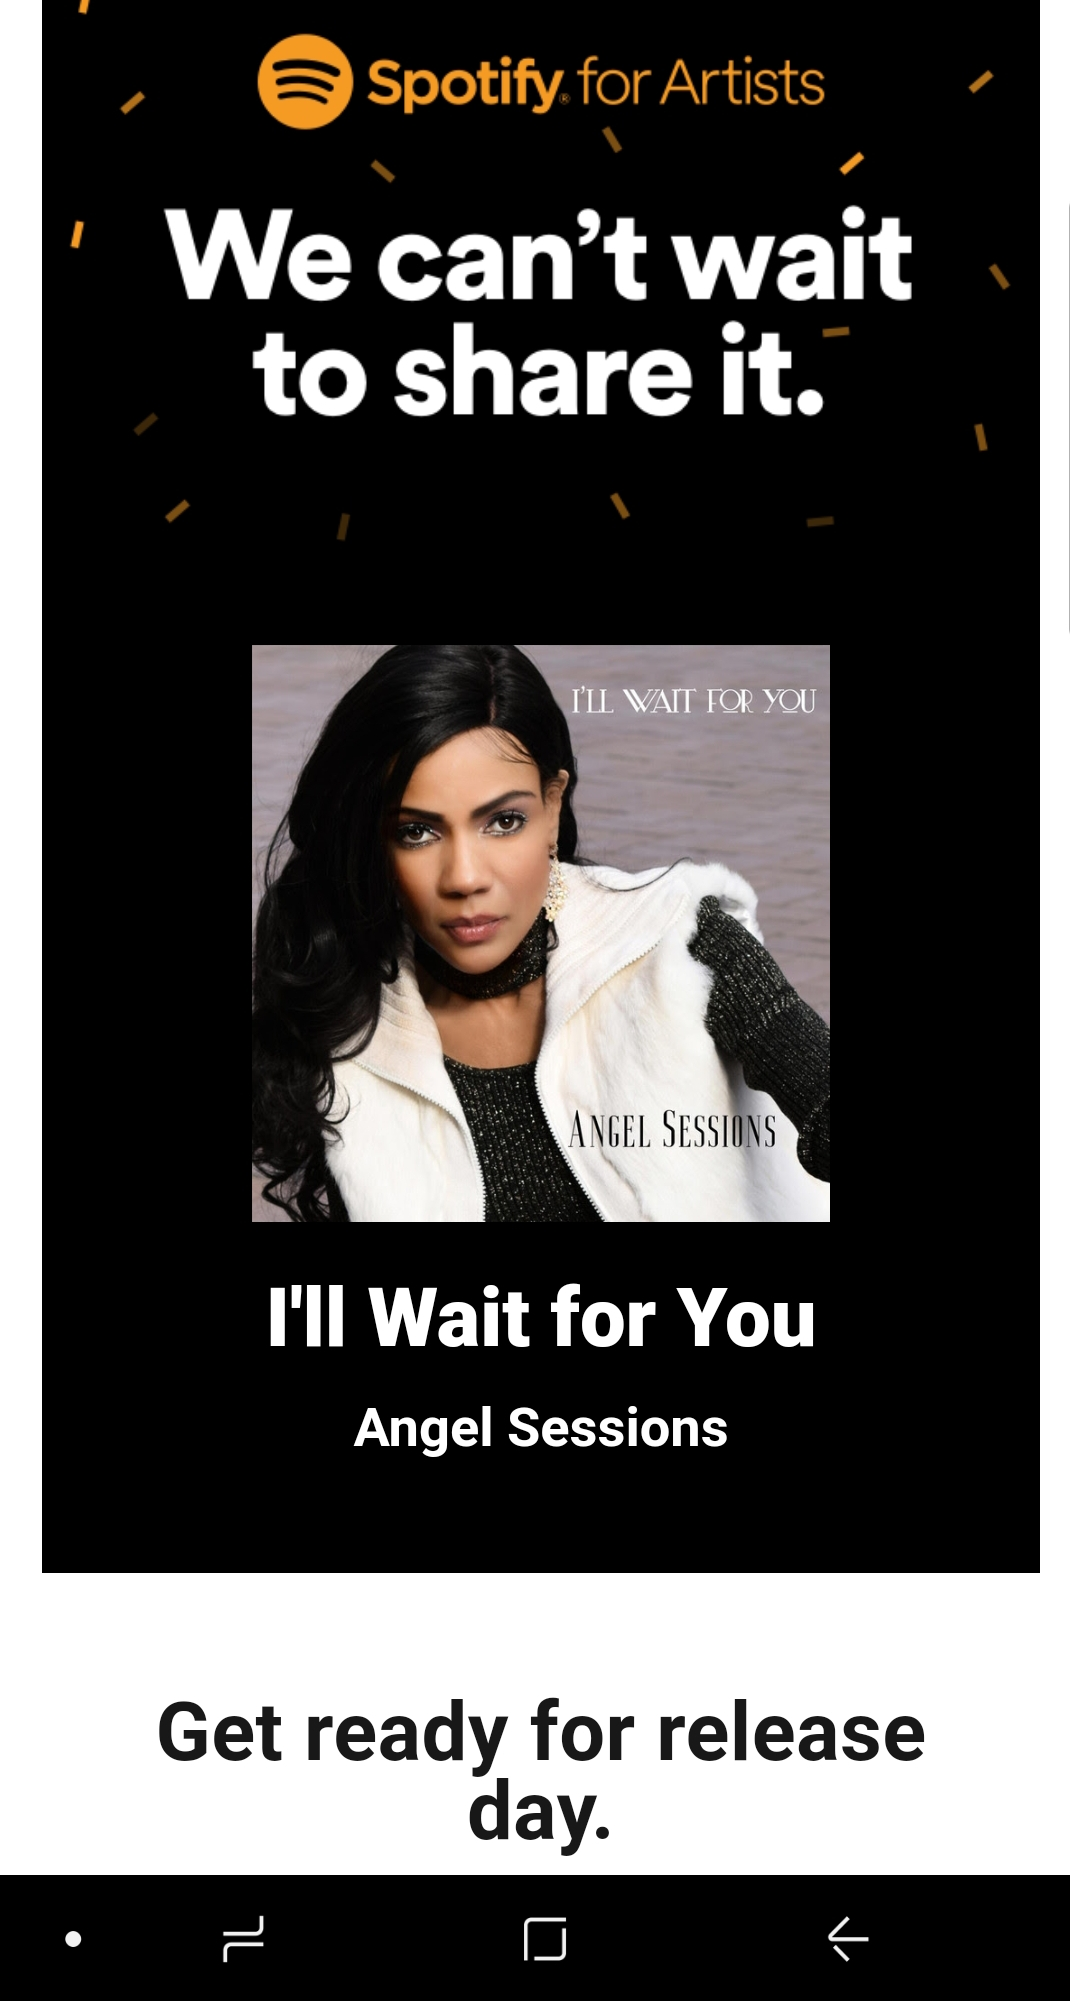 Spotify Advertisment for Angel Sessions I'll Wait